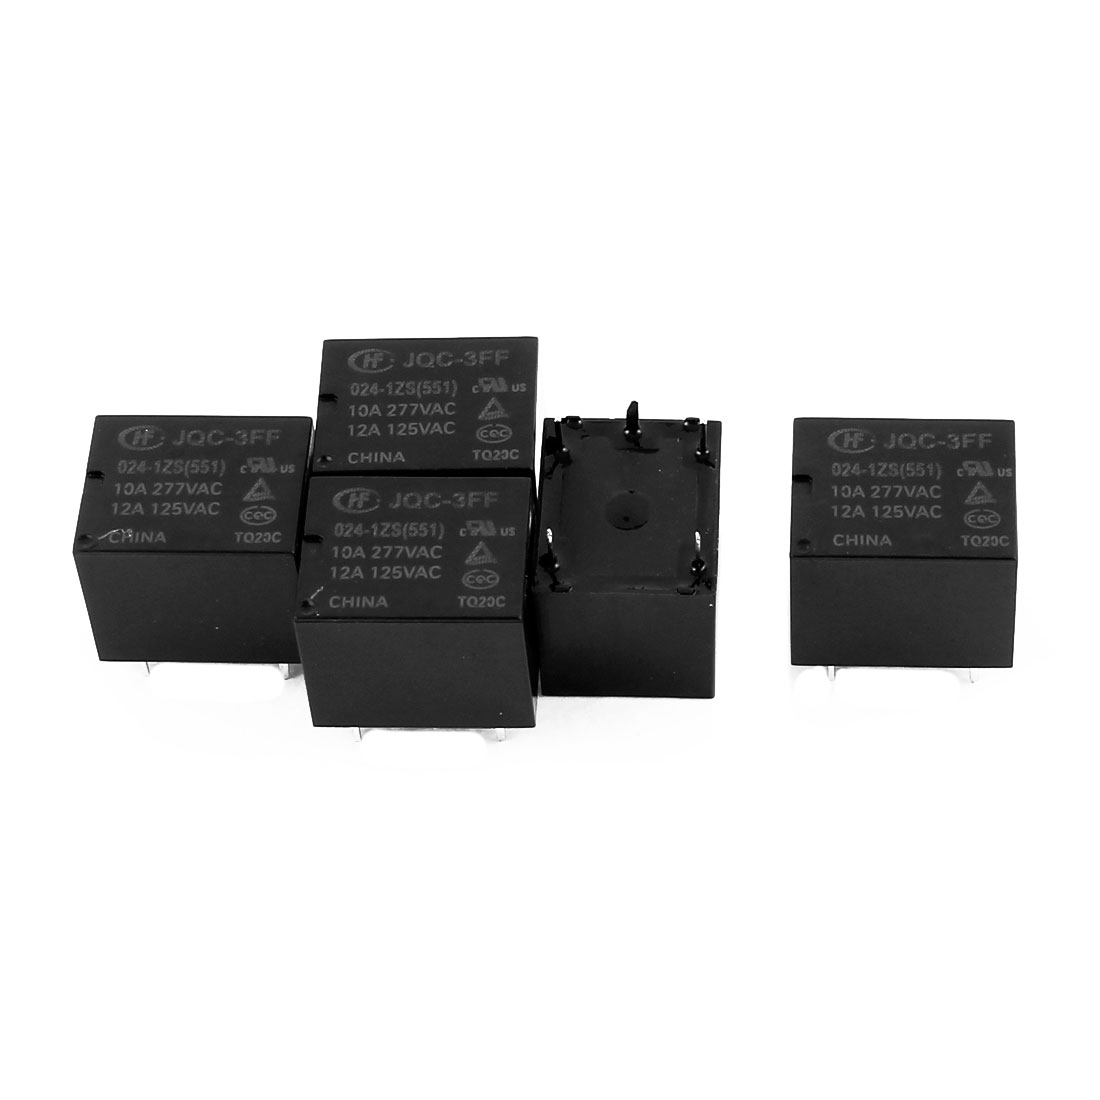 5 Pcs 24VDC 277VAC 10A 5 Pole SPDT Conversion JQC-3FF/012-1ZS(511) Power Relay